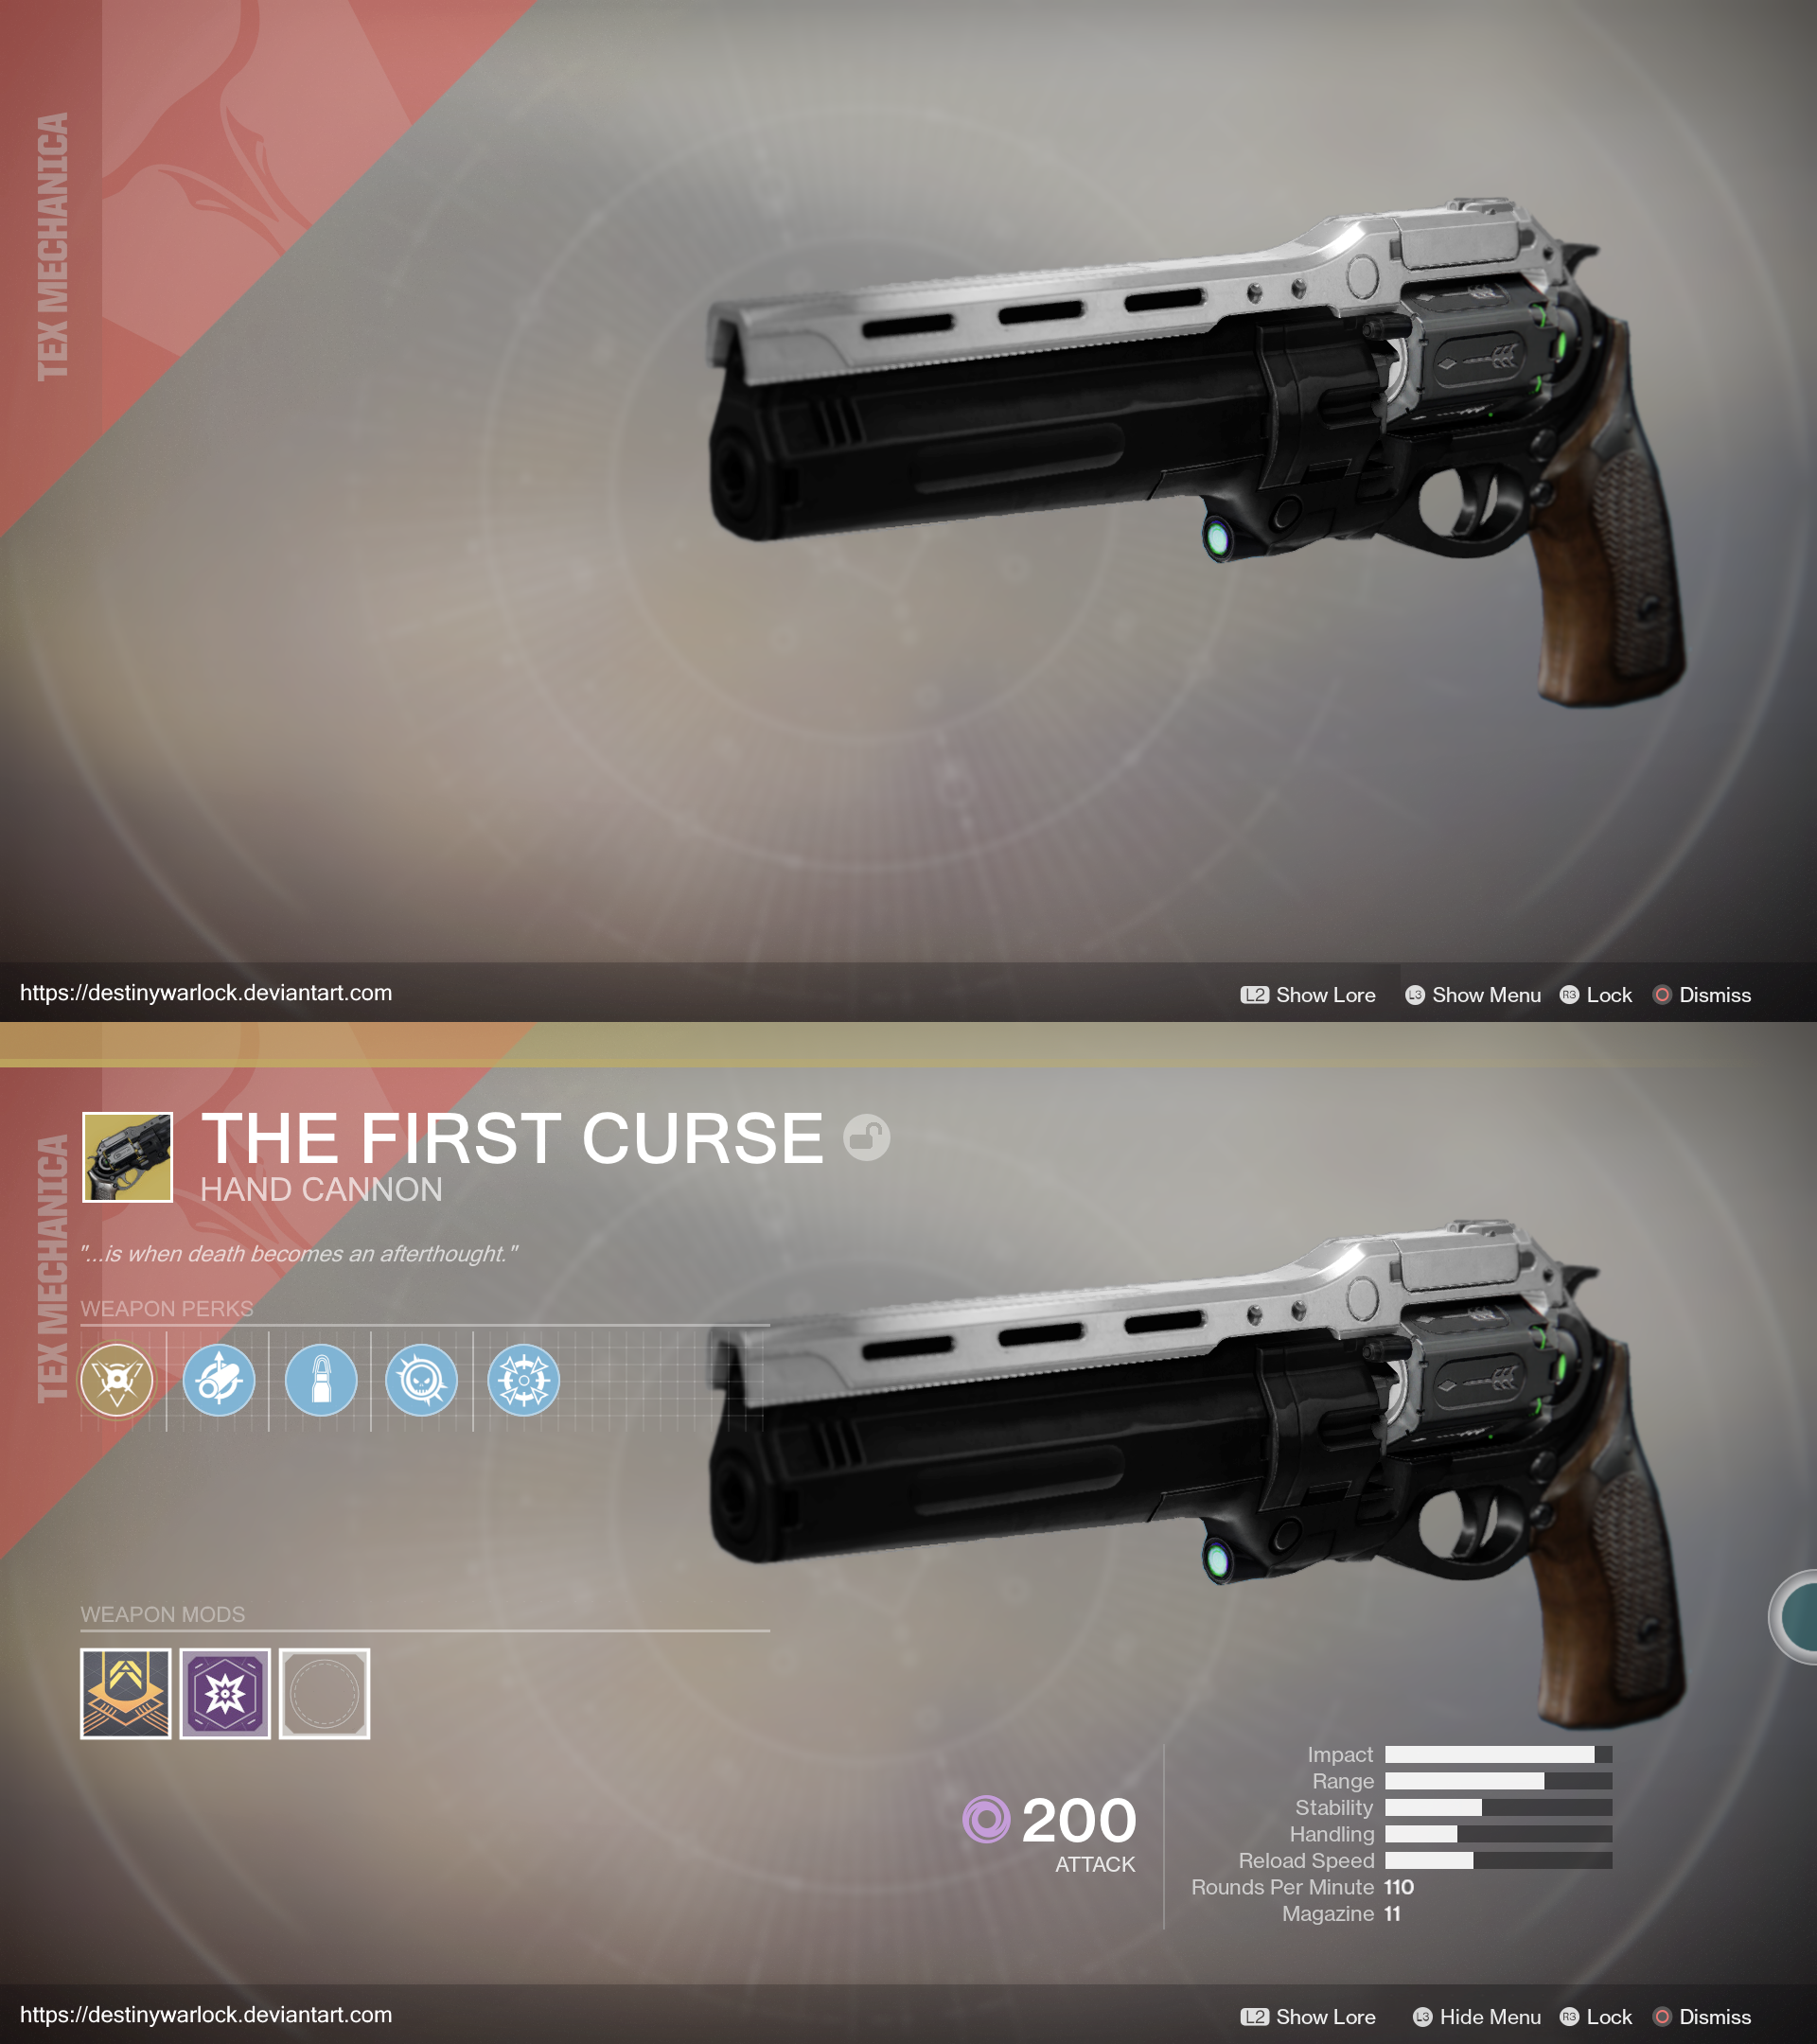 D2 Concept: The First Curse in Destiny 2 by DestinyWarlock